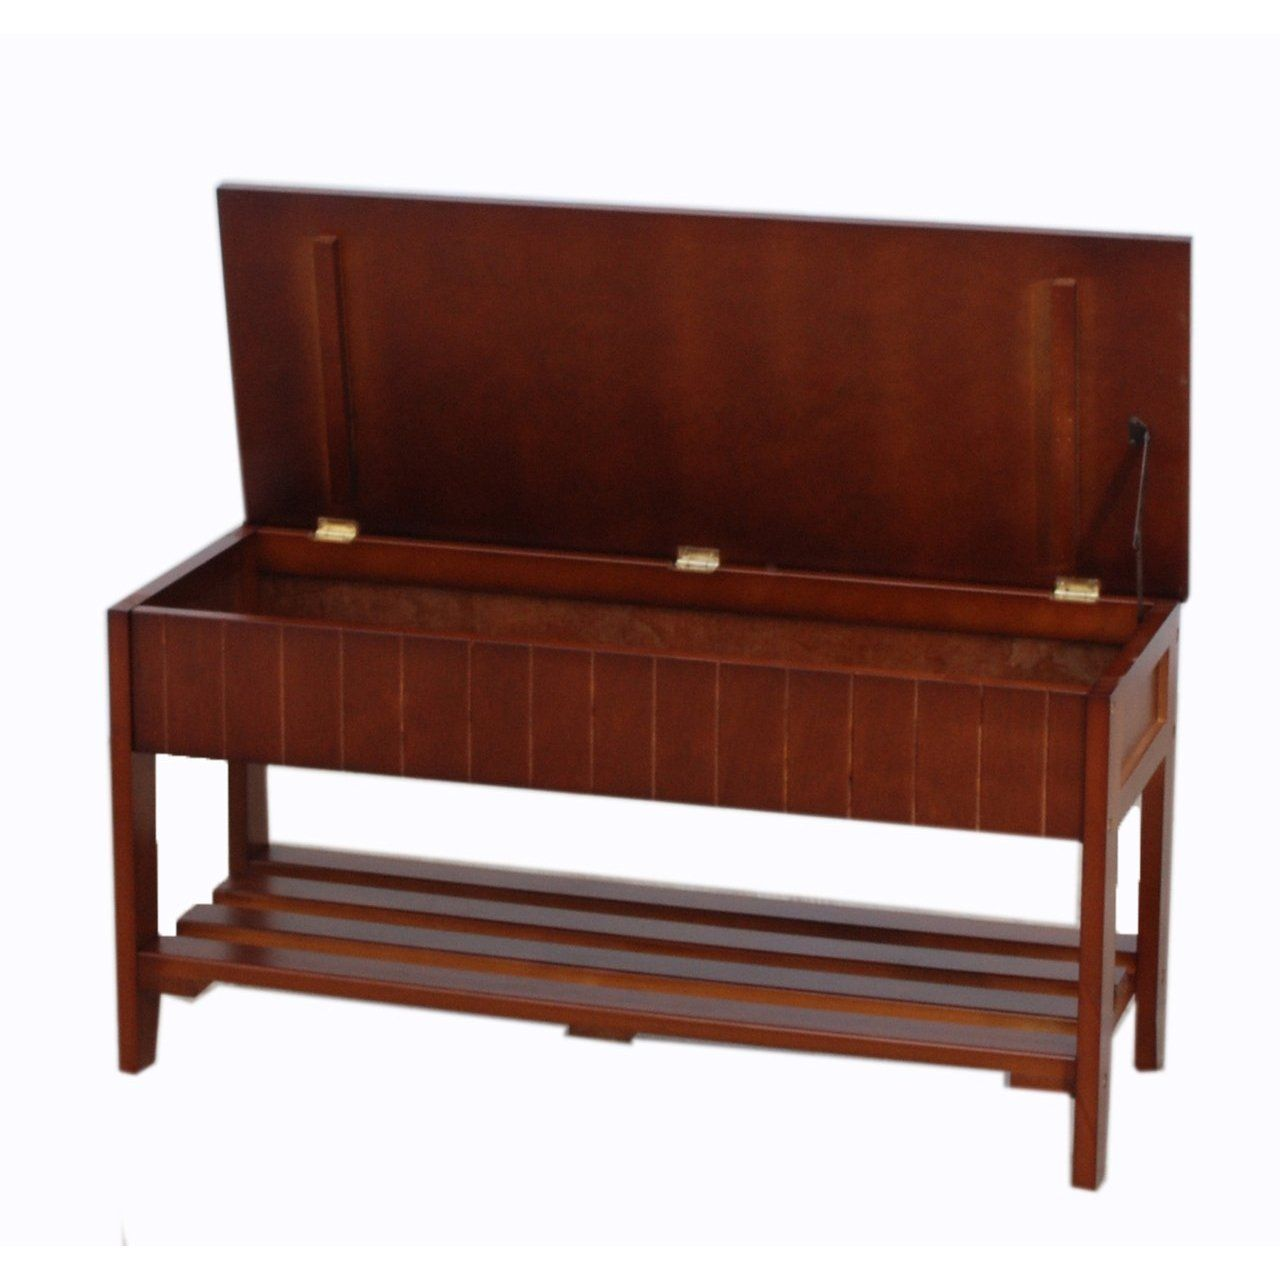 Furnituremaxx Solid Wood Shoe Bench With Storage Benches